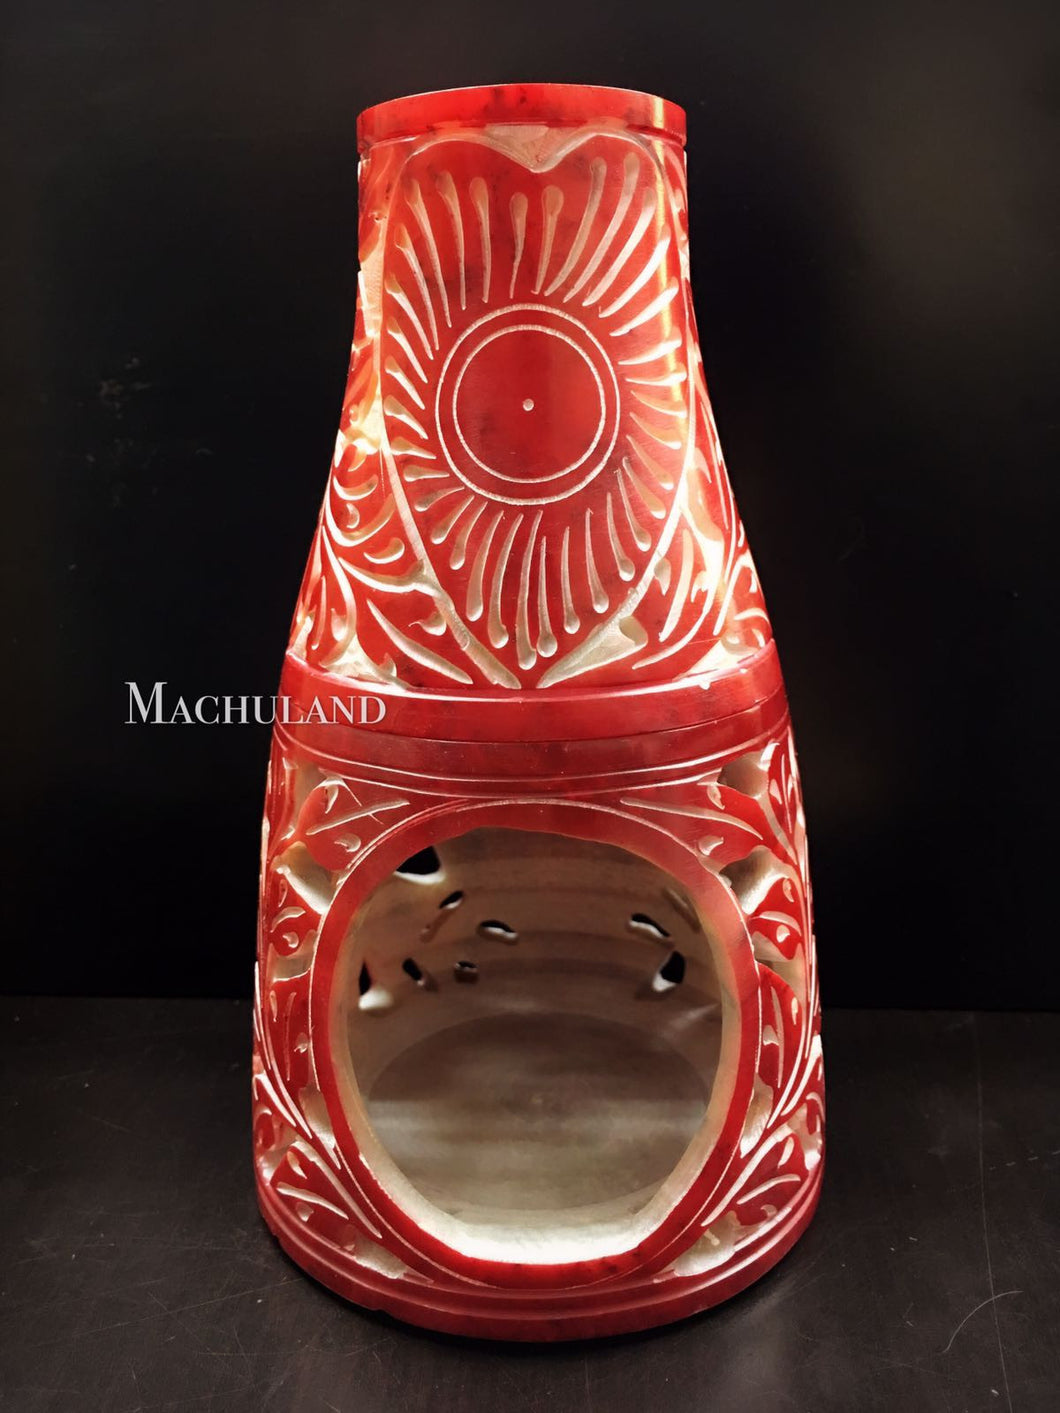 香薰石爐 (紅心) Aroma Stone Diffuser / Burner (Red Heart) - Machuland hk